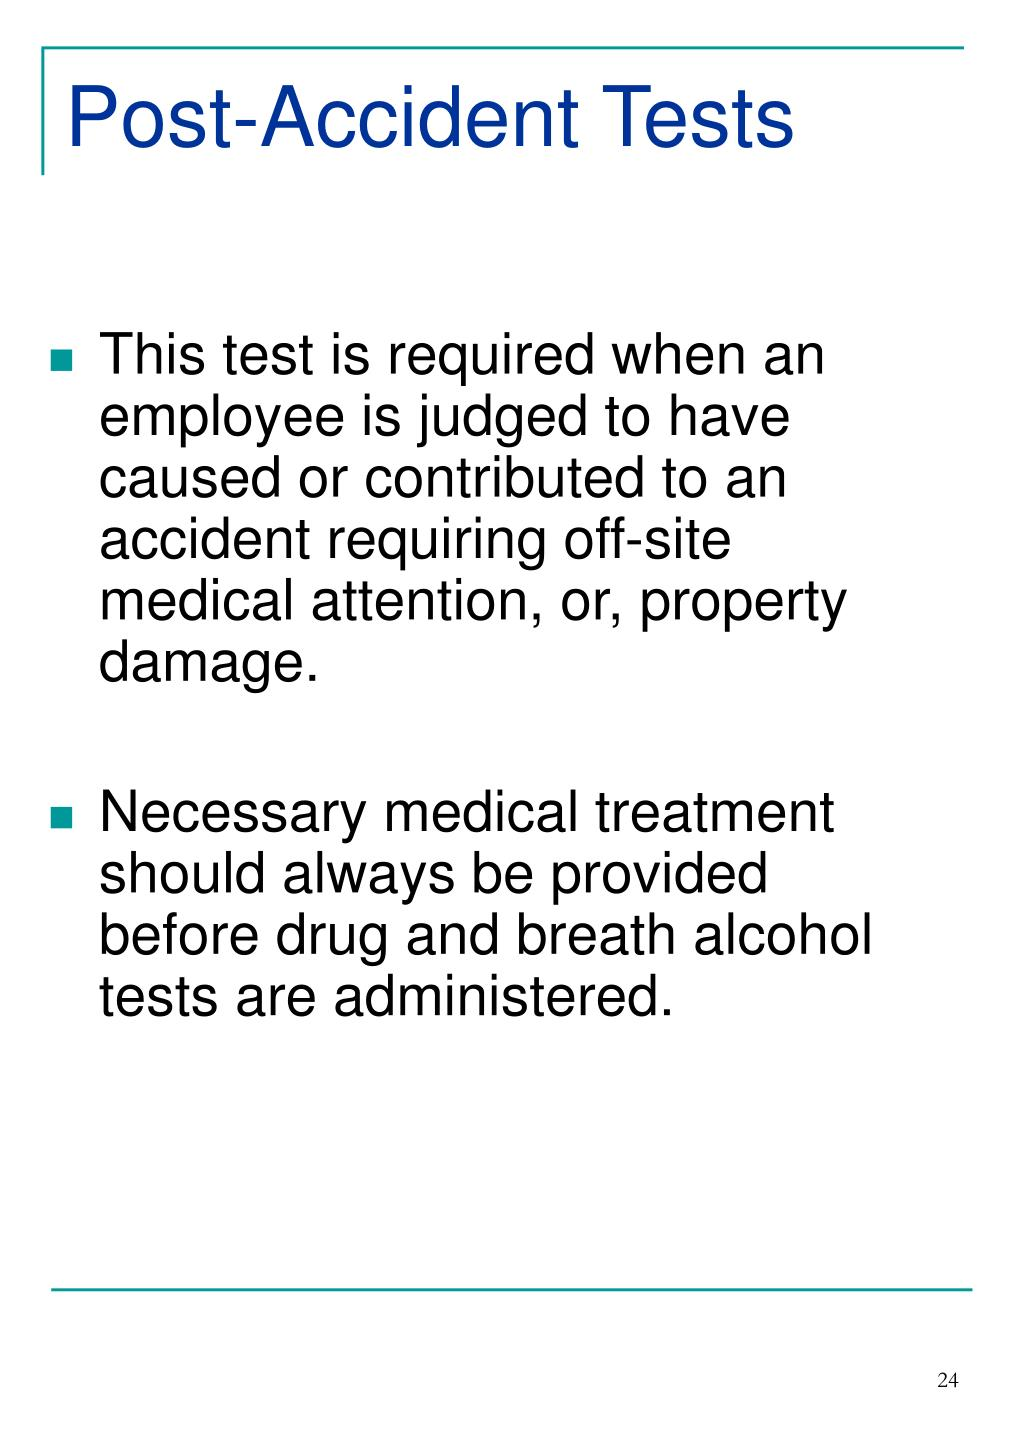 Post-Accident Tests